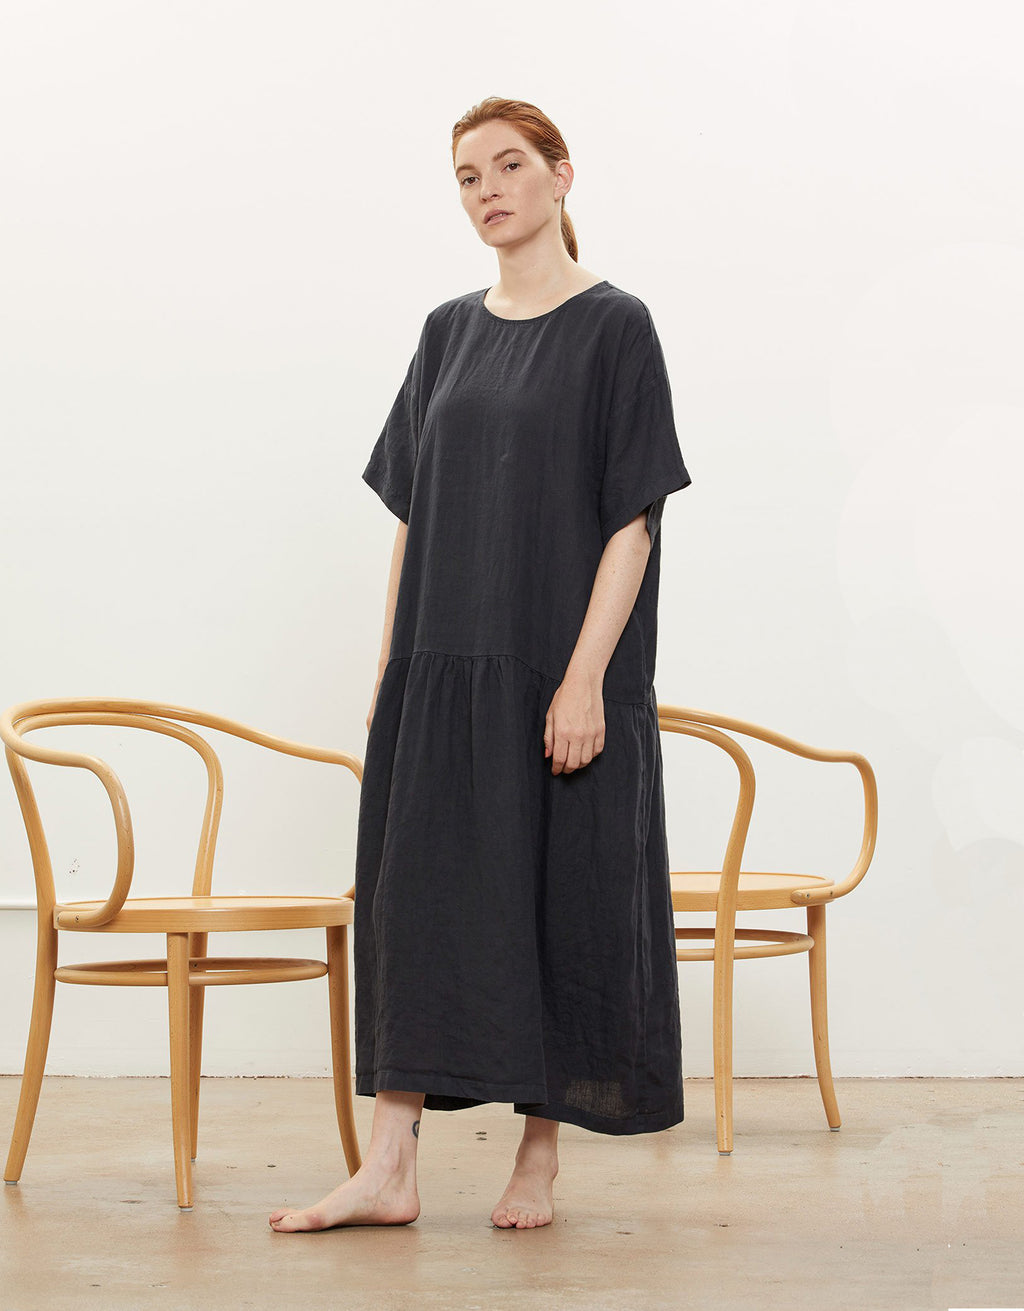 Model wears Black Crane Easy Tee Dress in Black. Available at FAWN Toronto.